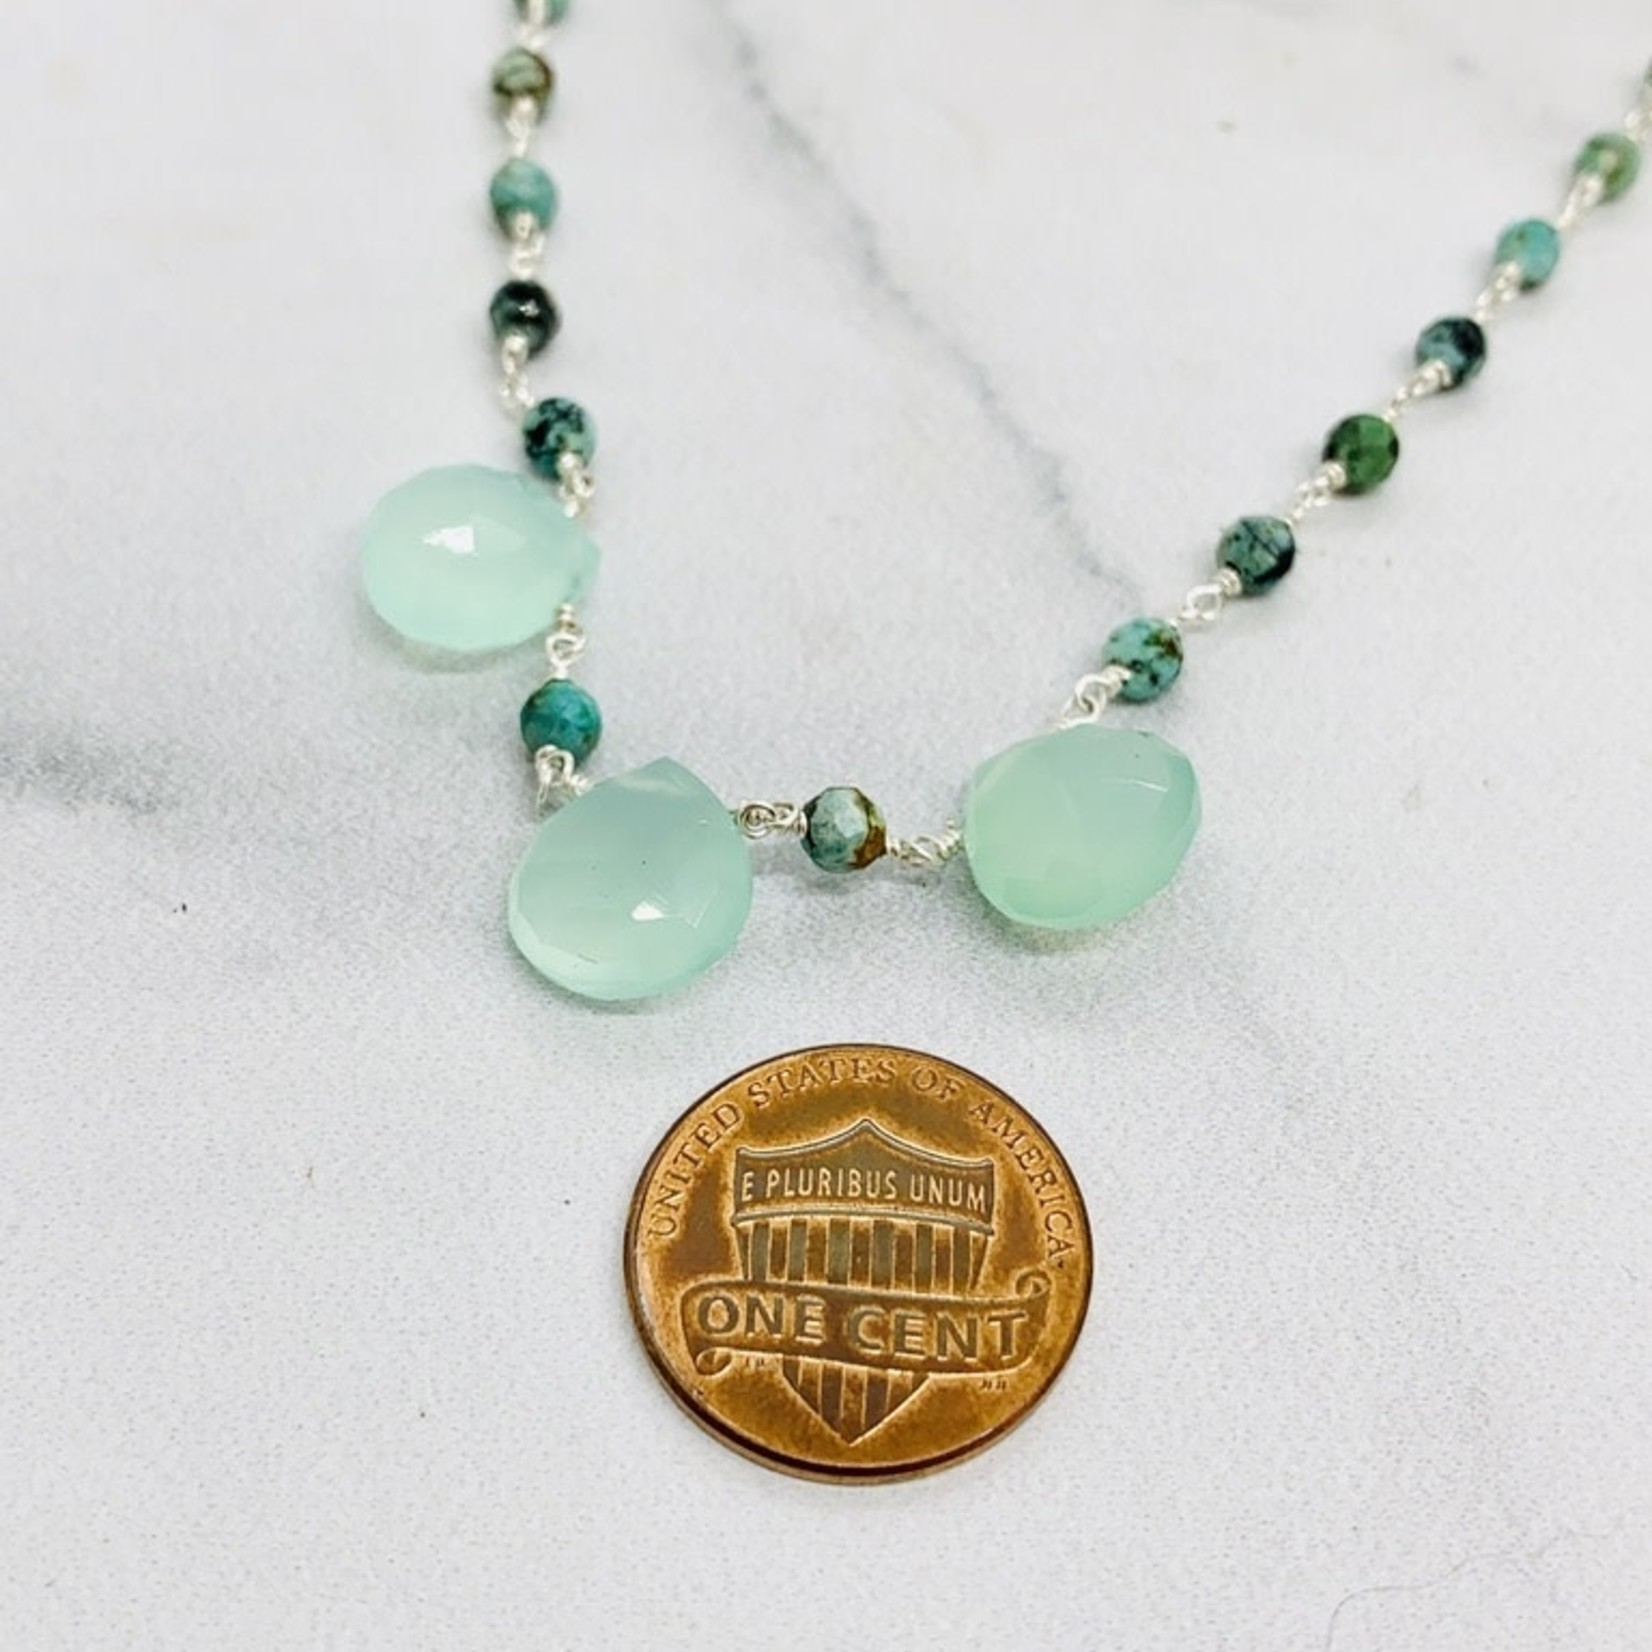 Handmade necklace with connected african turquoise, 3 green chalcedony